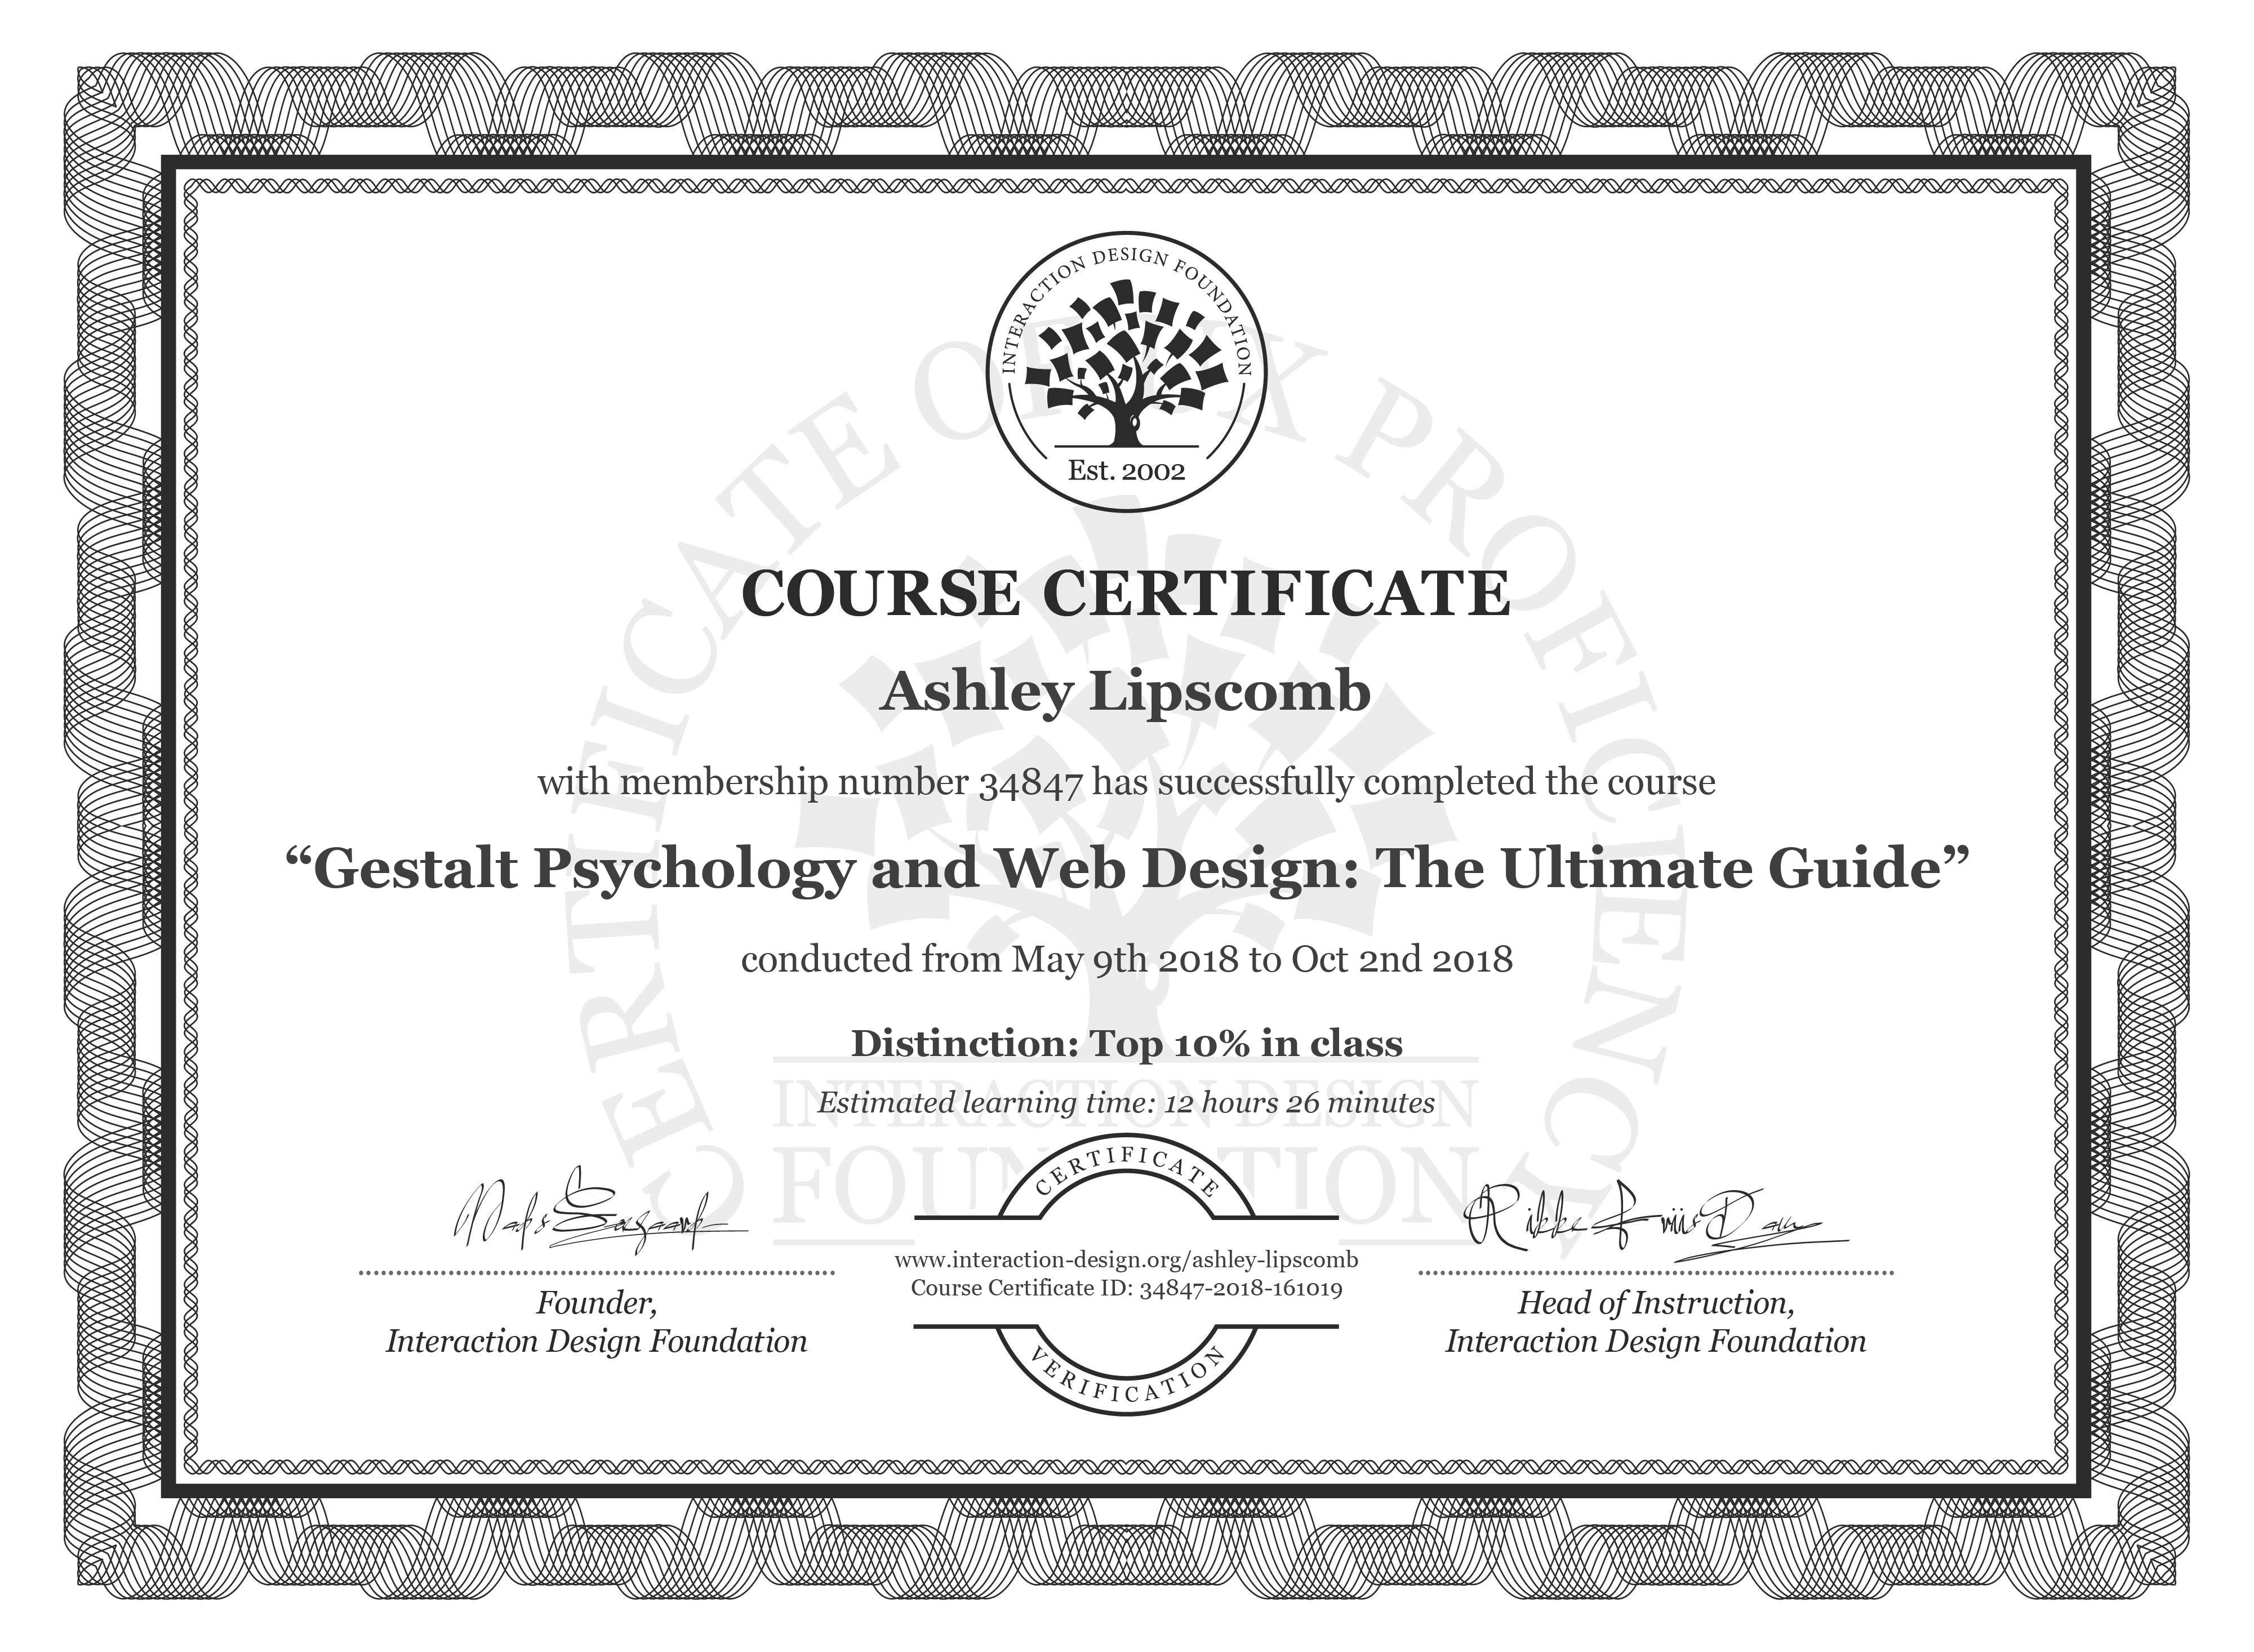 Ashley Lipscomb: Course Certificate - Gestalt Psychology and Web Design: The Ultimate Guide